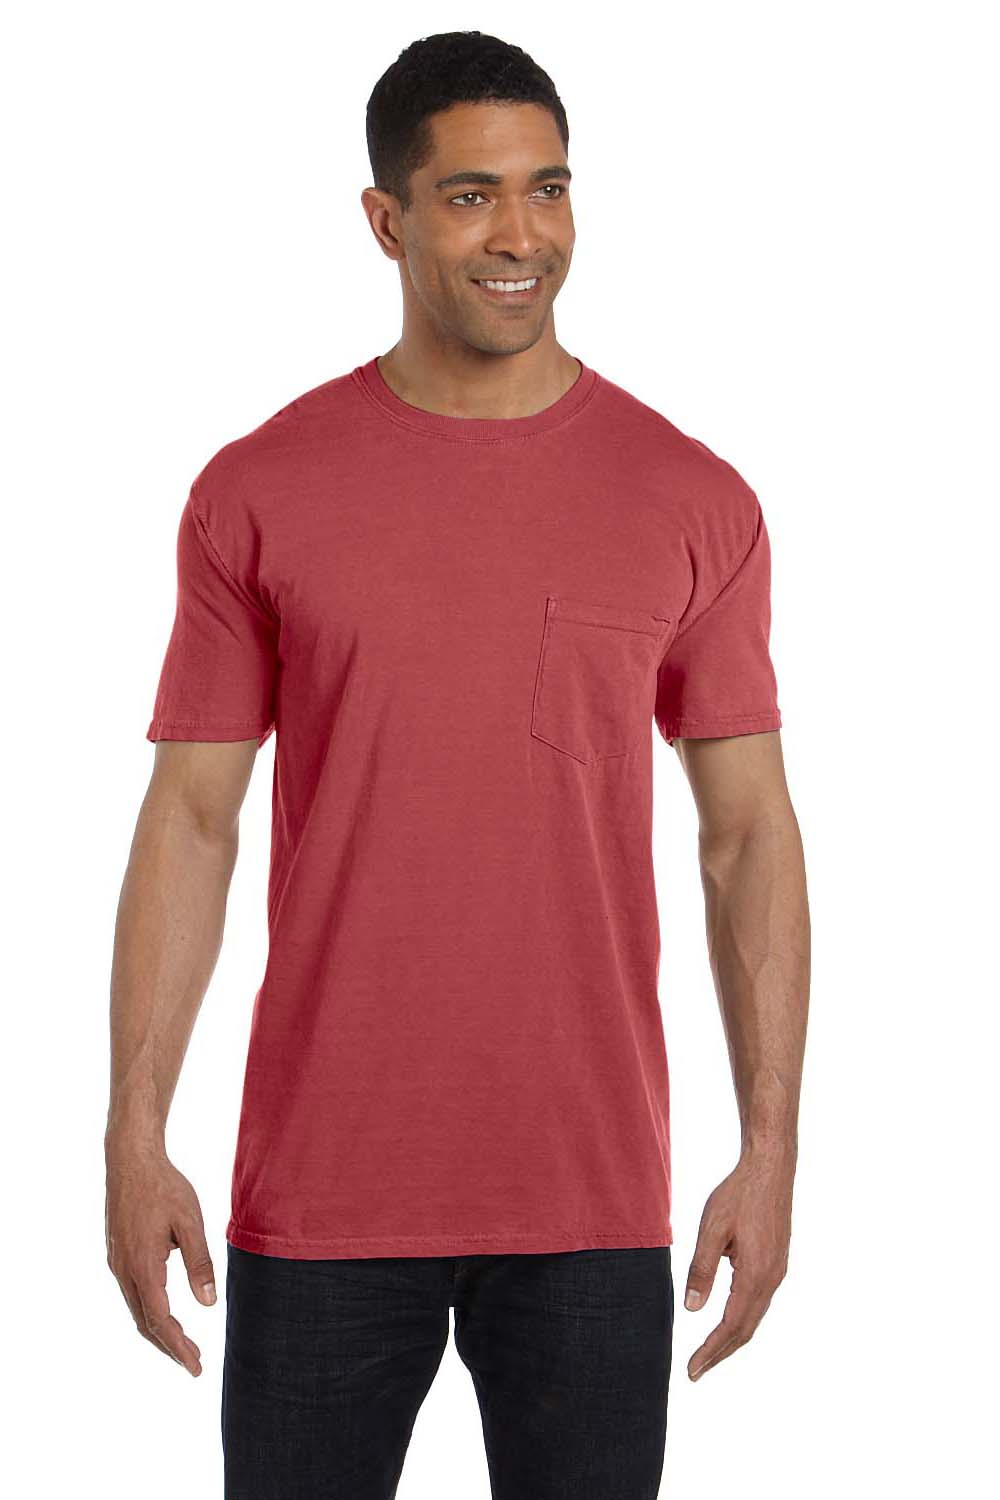 Comfort Colors 6030CC Mens Short Sleeve Crewneck T-Shirt w/ Pocket Crimson Red Front